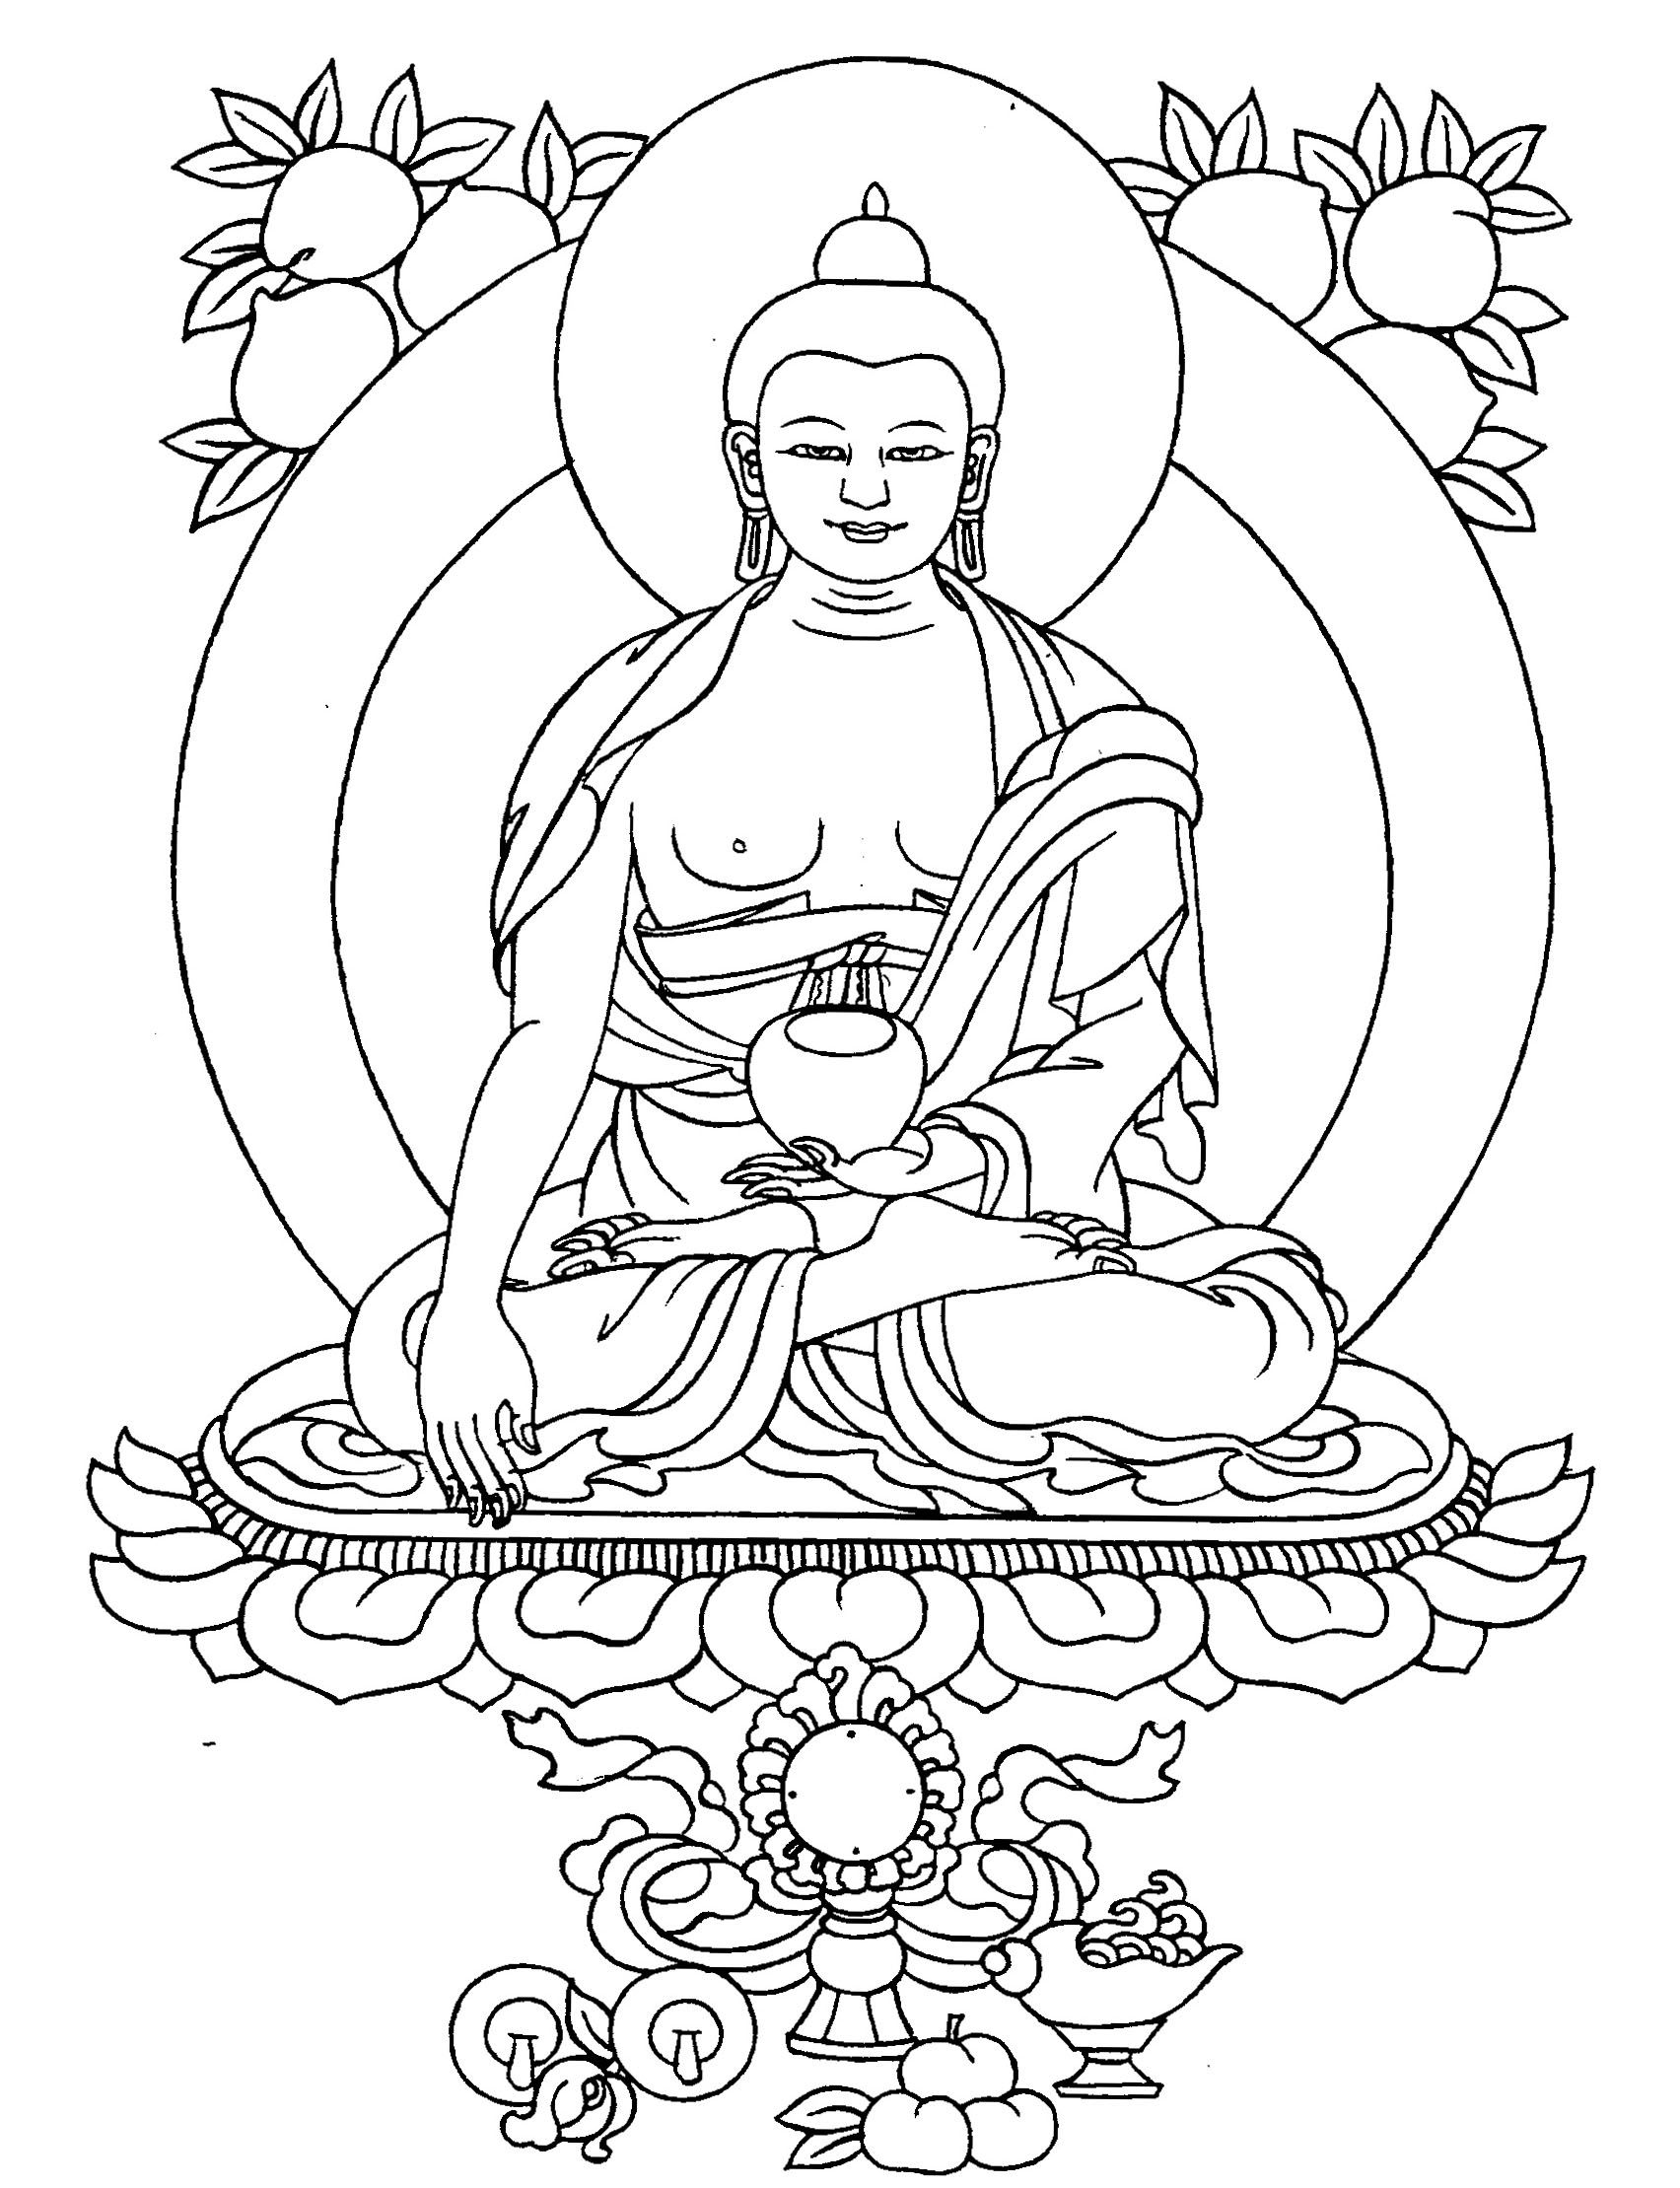 Pin by Patricia Iannone on Diseños - Hindues | Pinterest | Buddha ...